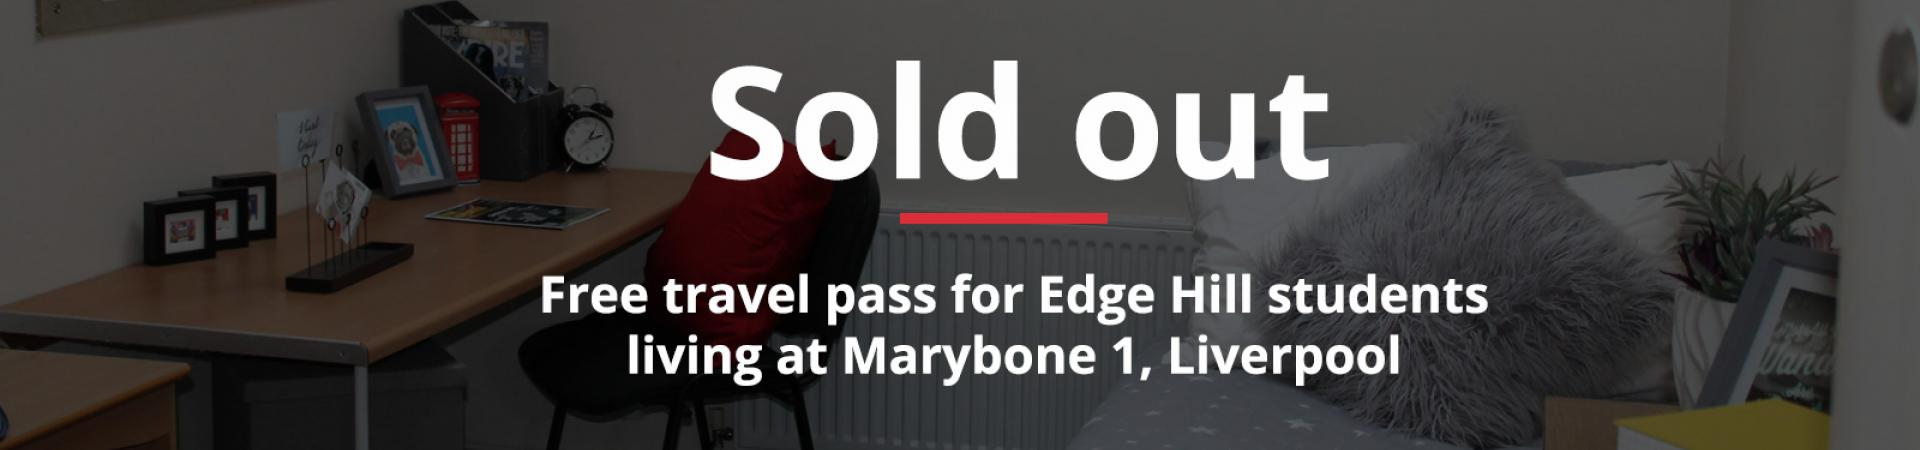 Free travel pass for Edge Hill students living at Marybone 1, Liverpool